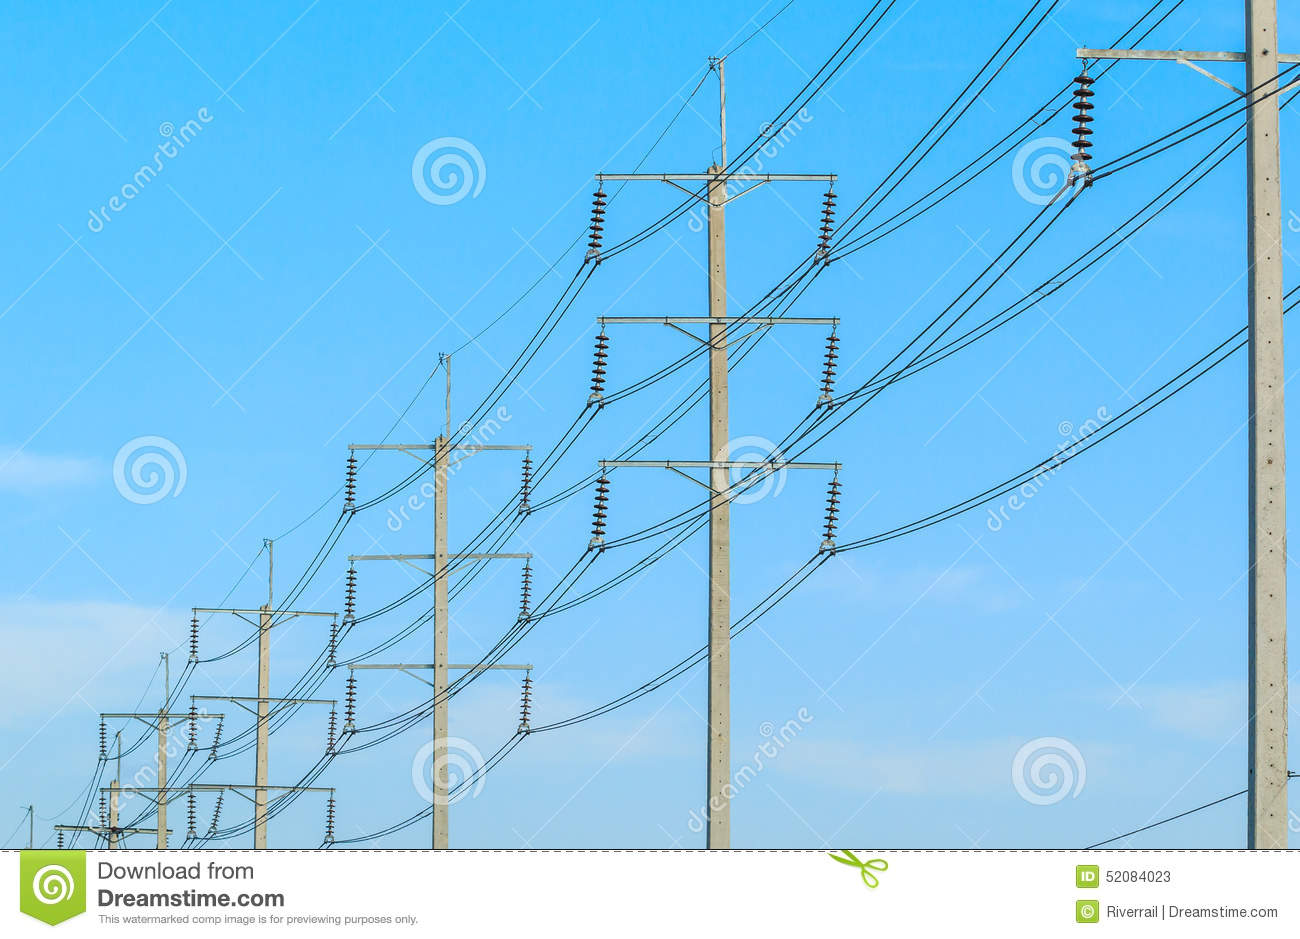 Wire Pole At High Voltage Electrical Post Stock Photo - Image ...